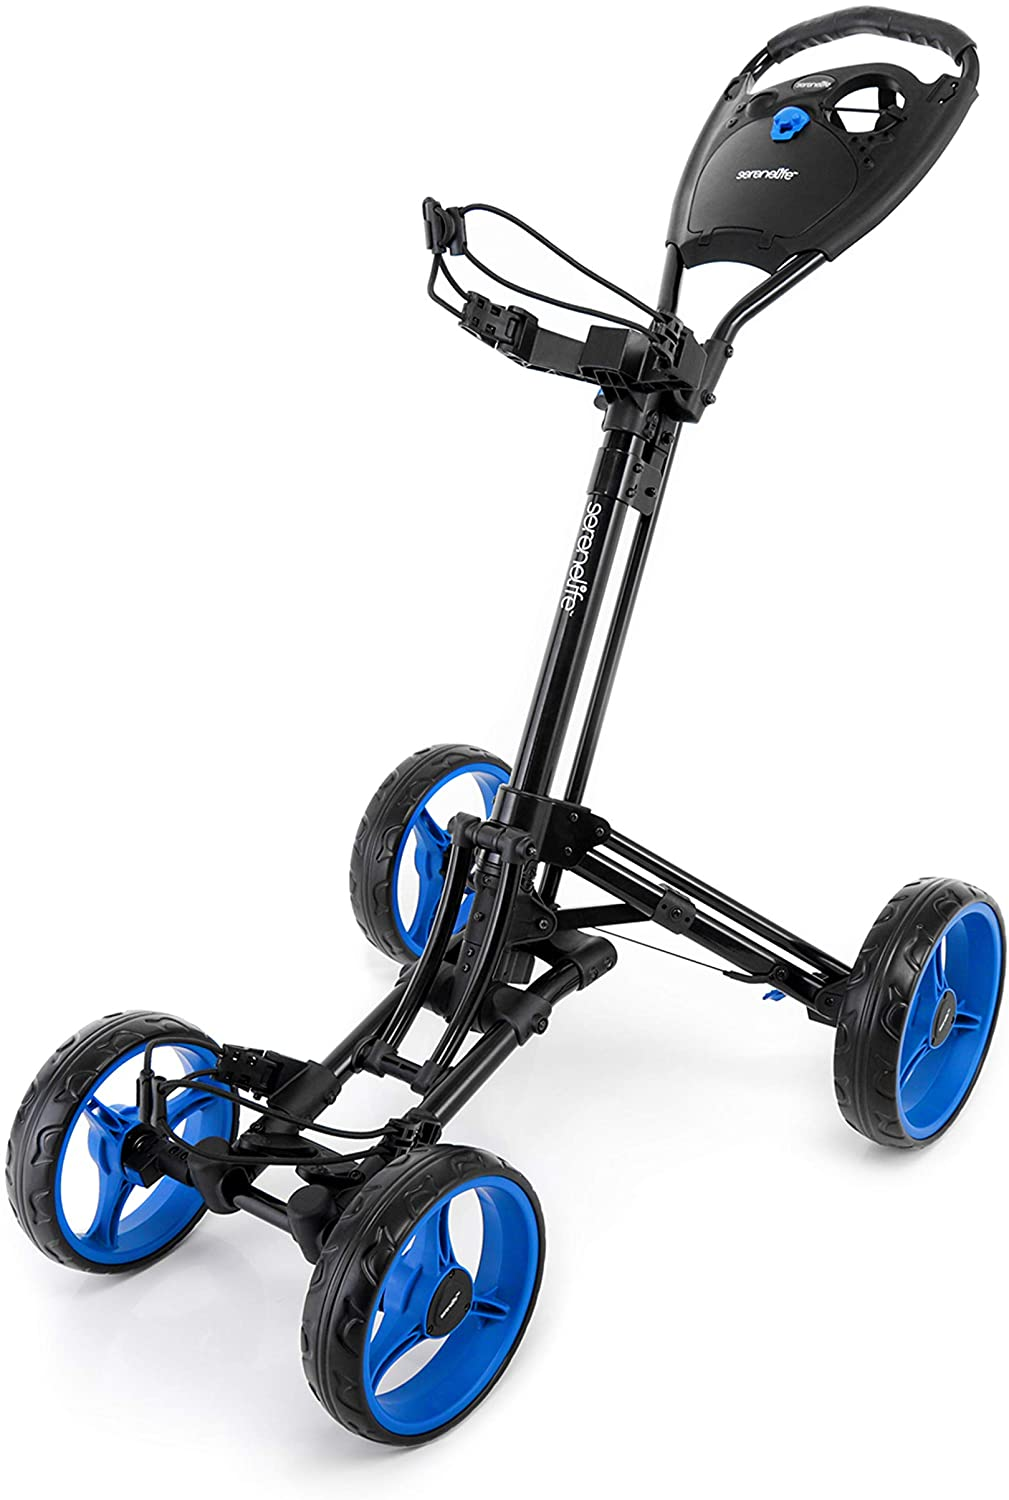 Best 4 Wheel Golf Push Carts 2021 - (MUST READ Before You Buy)